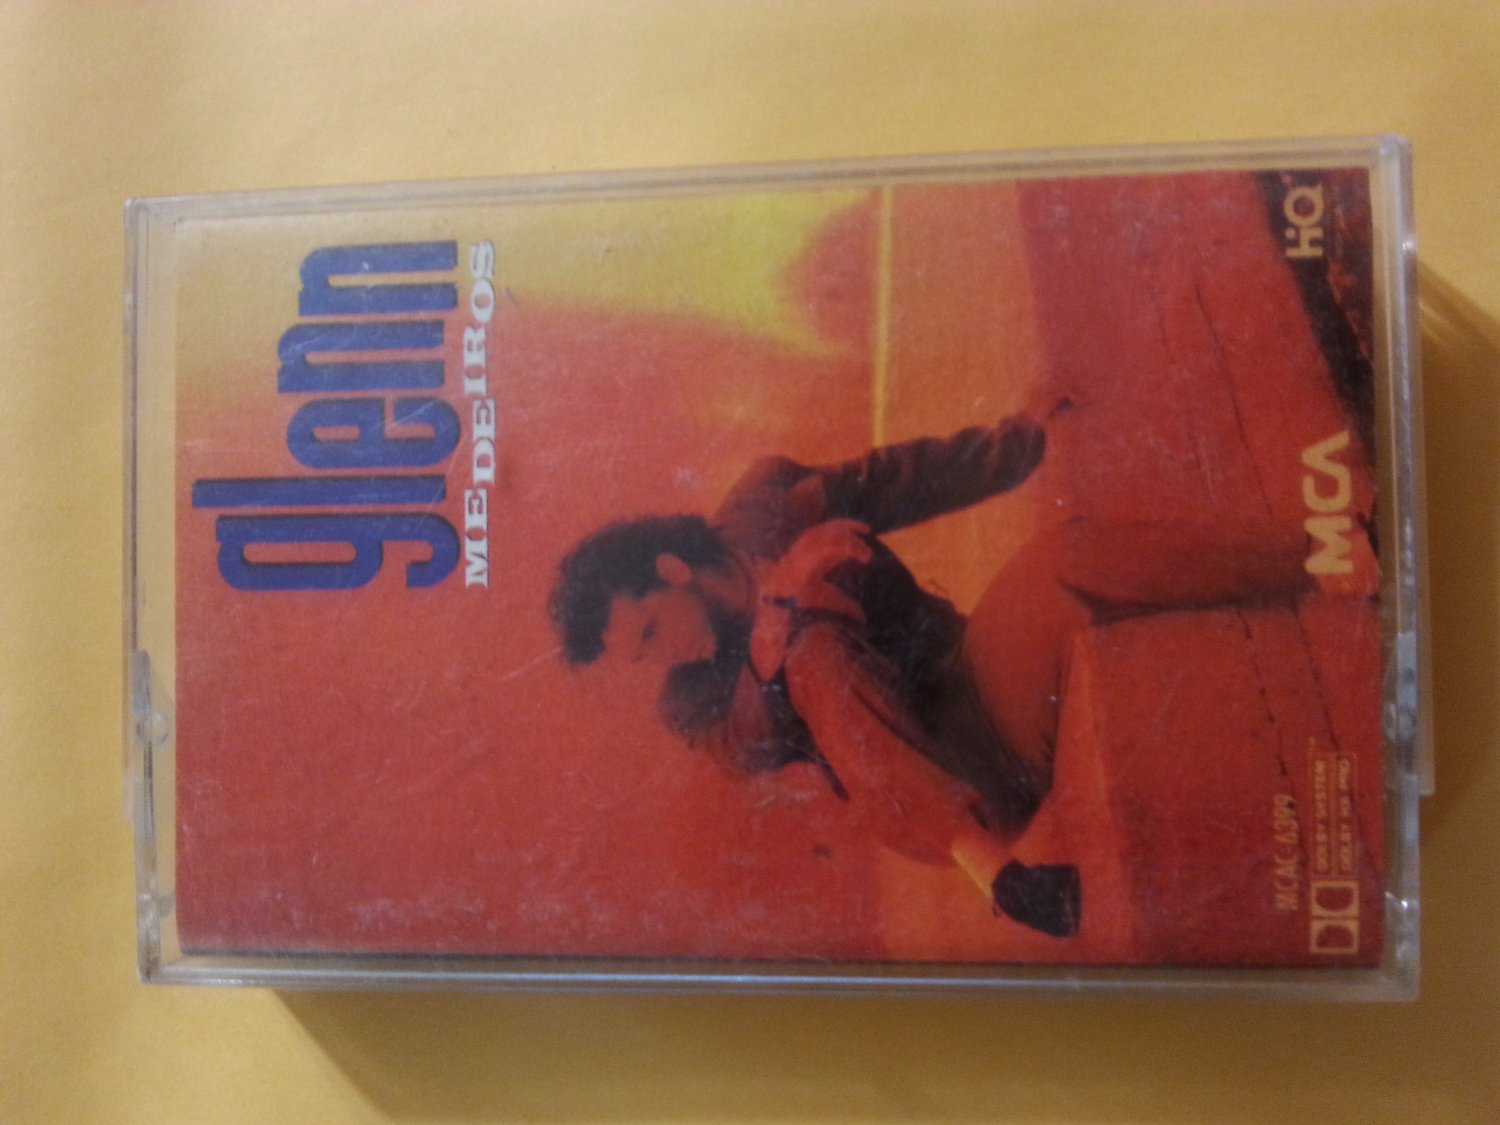 Glenn Medeiros Self Titled Cassette Tape